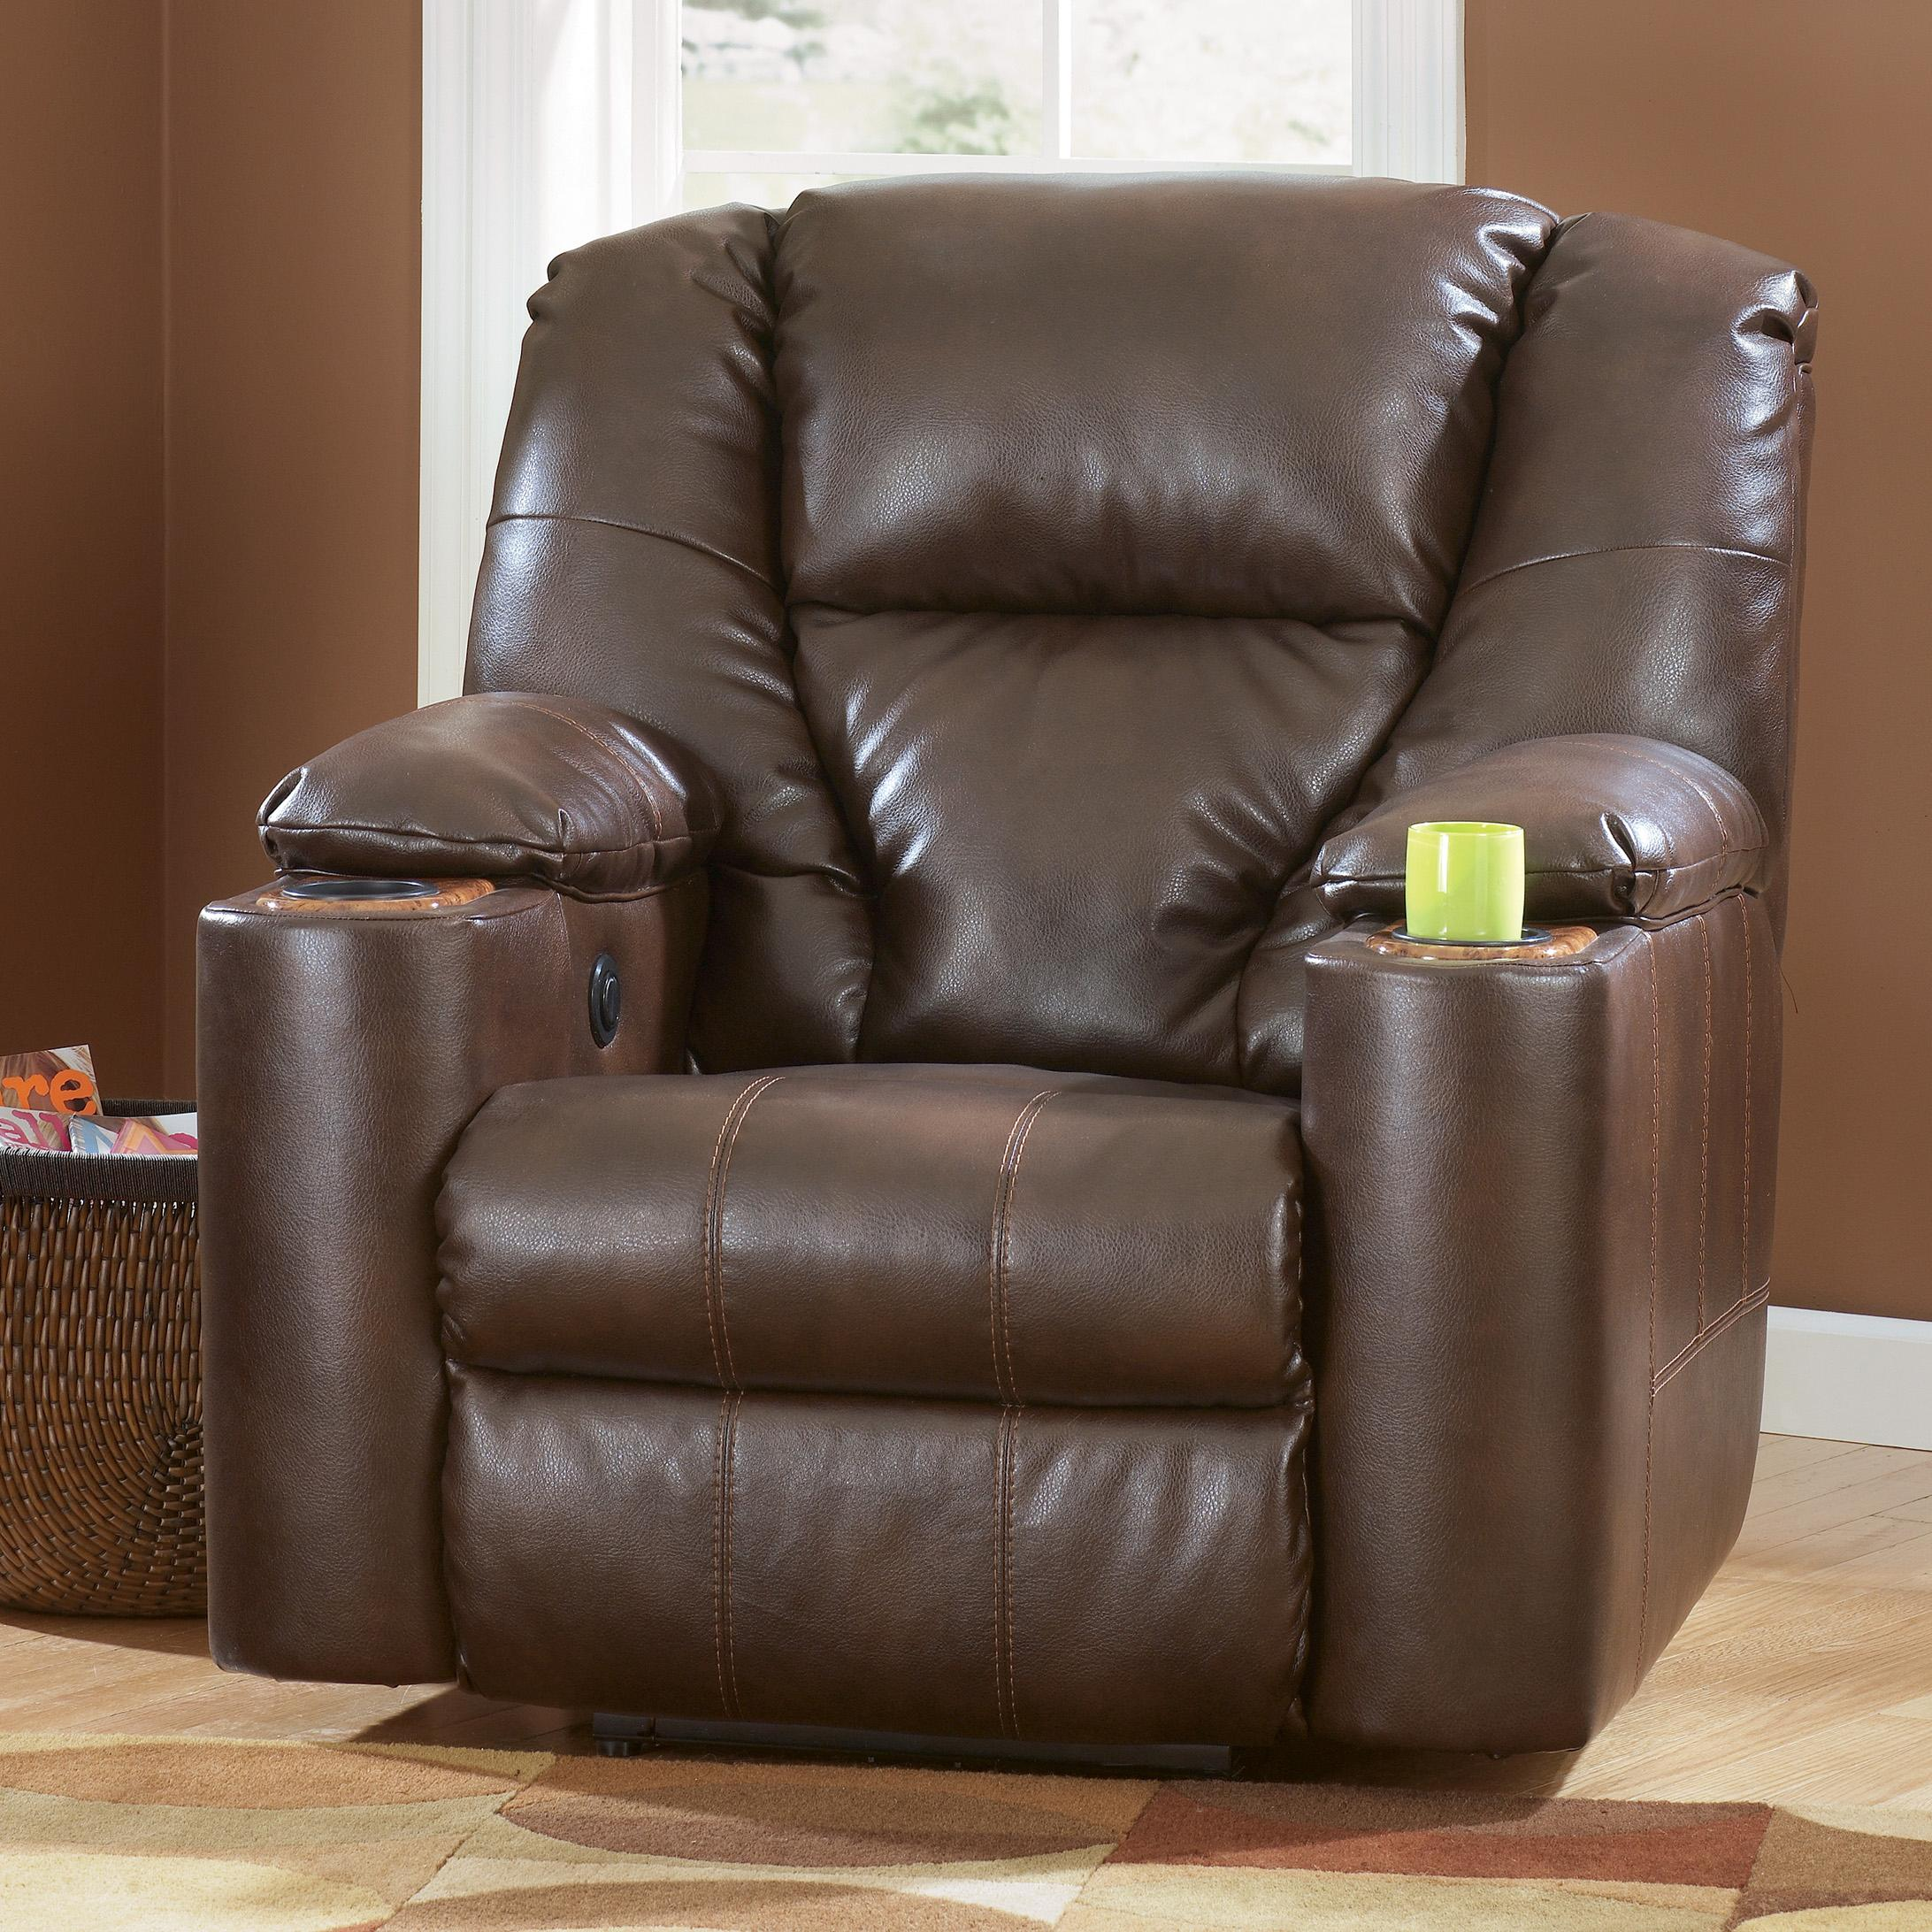 Power Recliner With Cup Holders By Signature Design By Ashley